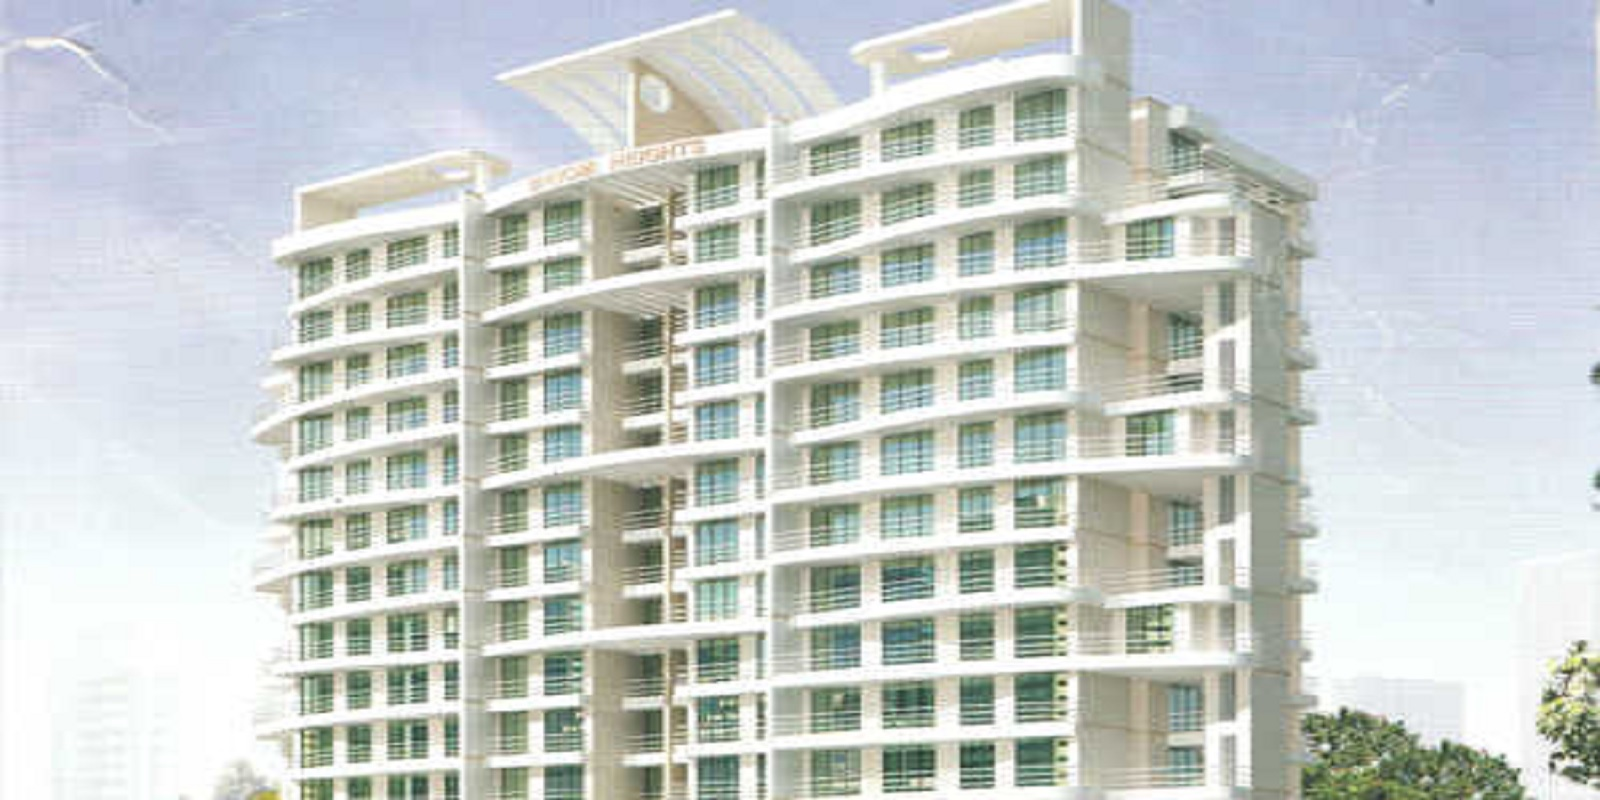 sun bhoomi heights project project large image1